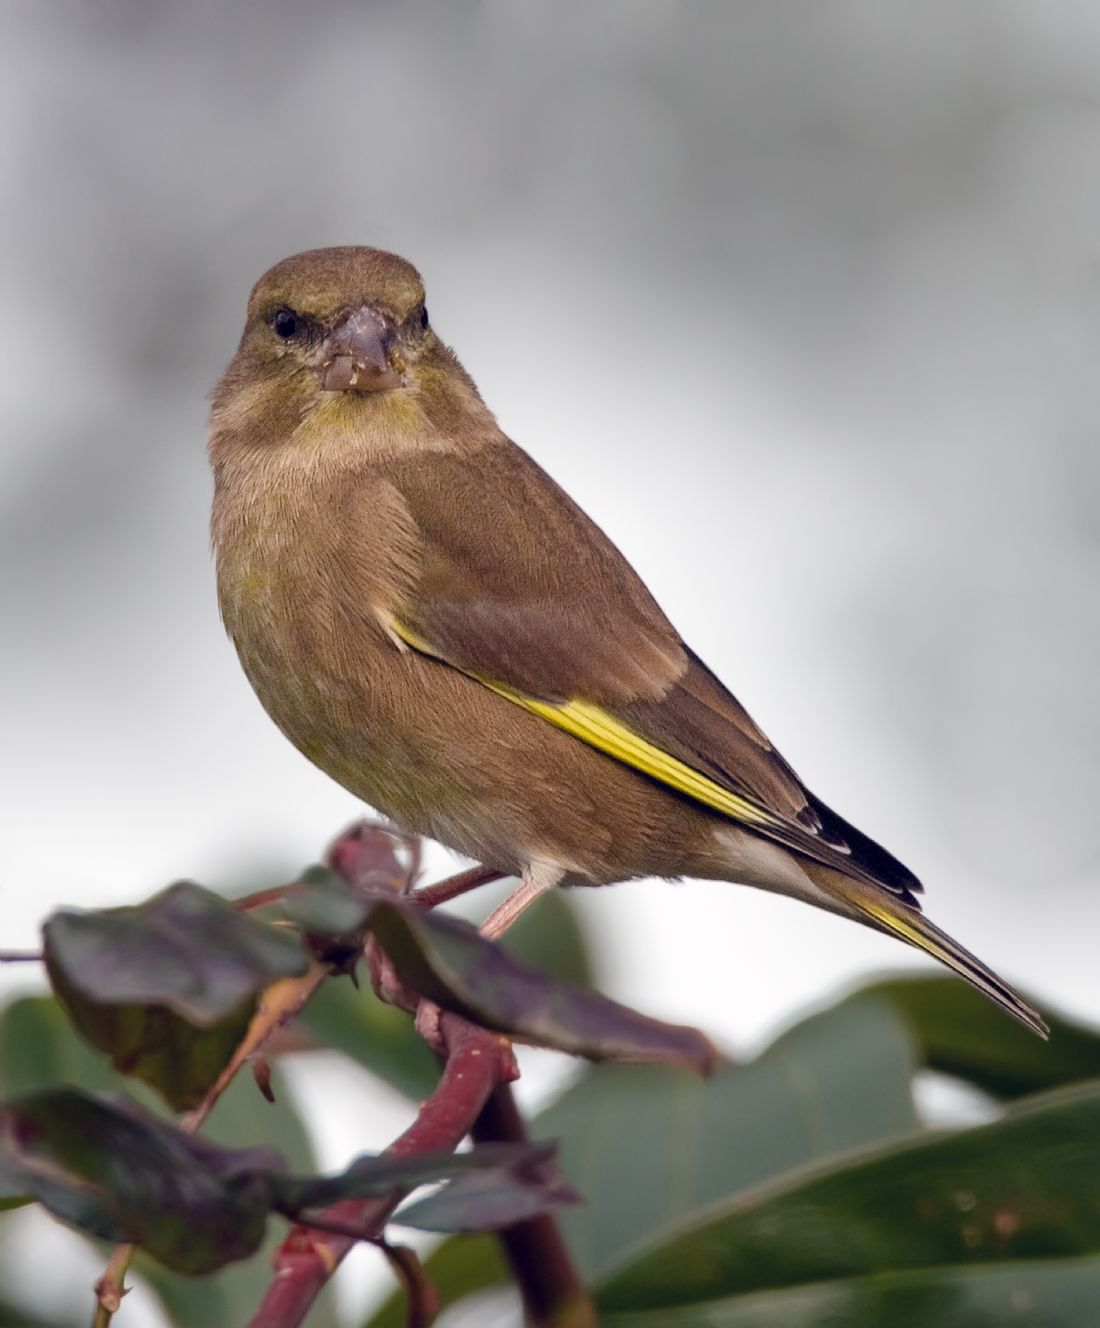 Tom Dolezal | European greenfinch